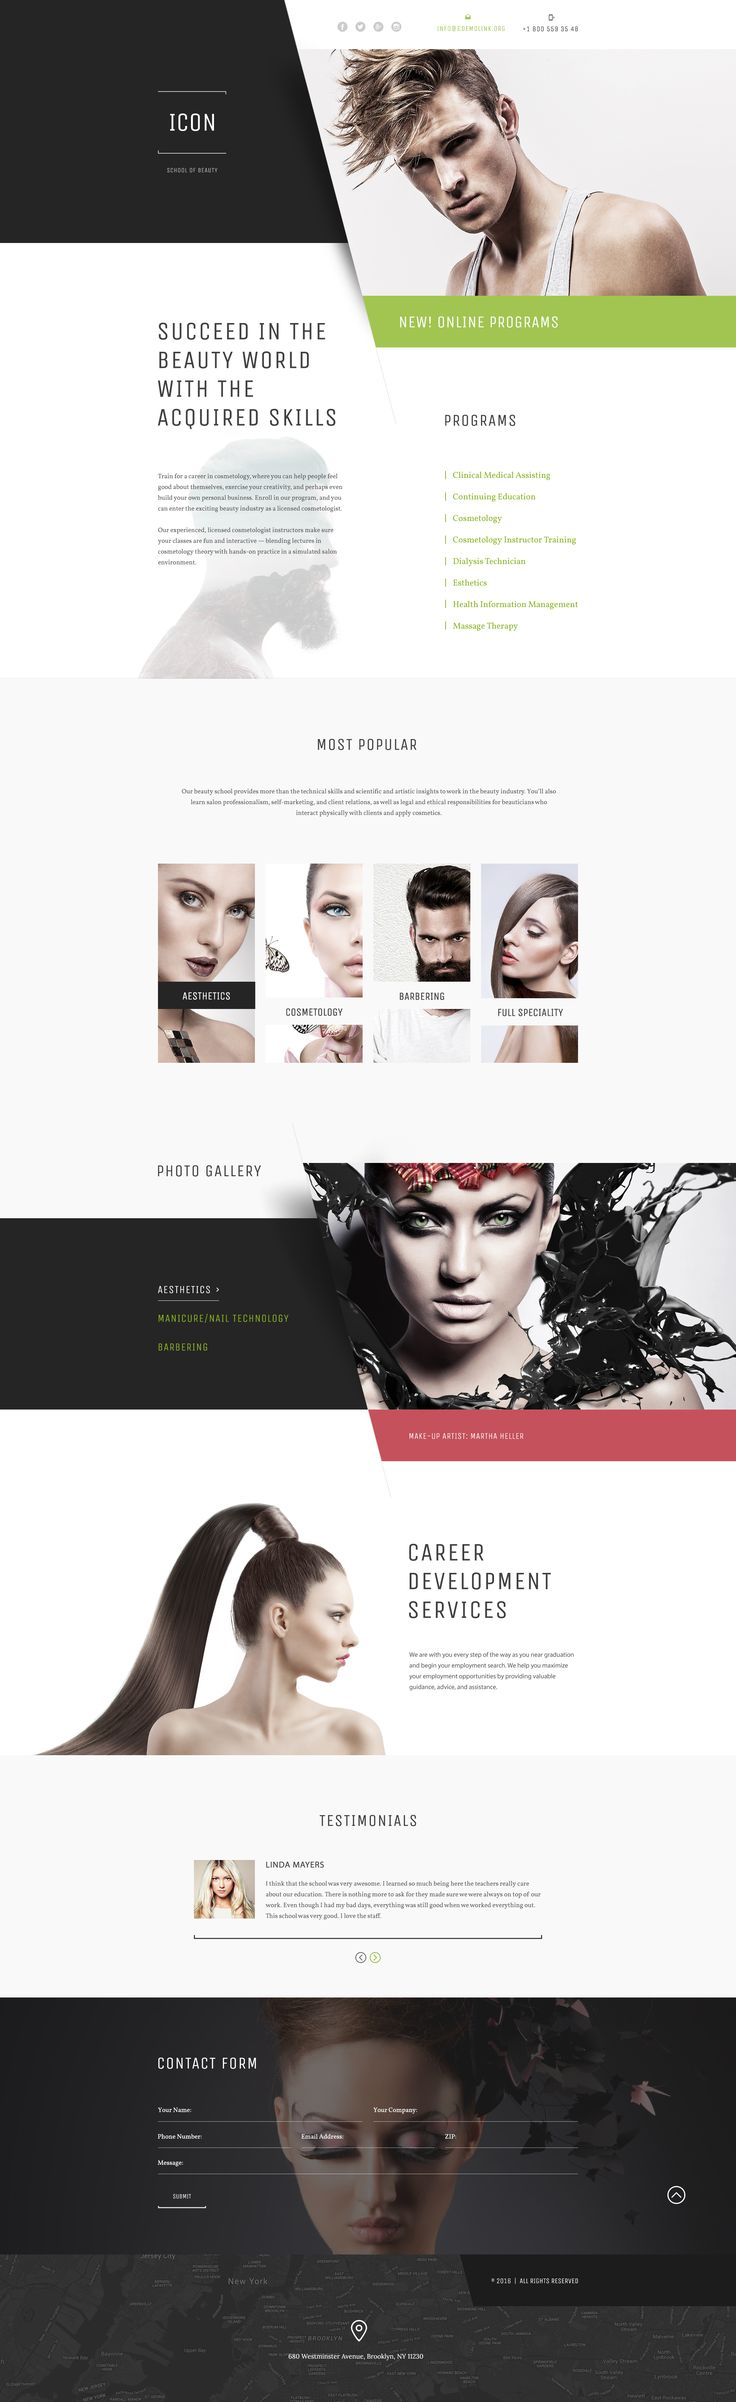 Beauty School Responsive Landing Page Template #58405 http://www.templatemonster.com/landing-page-template/beauty-school-responsive-landing-page-template-58405.html